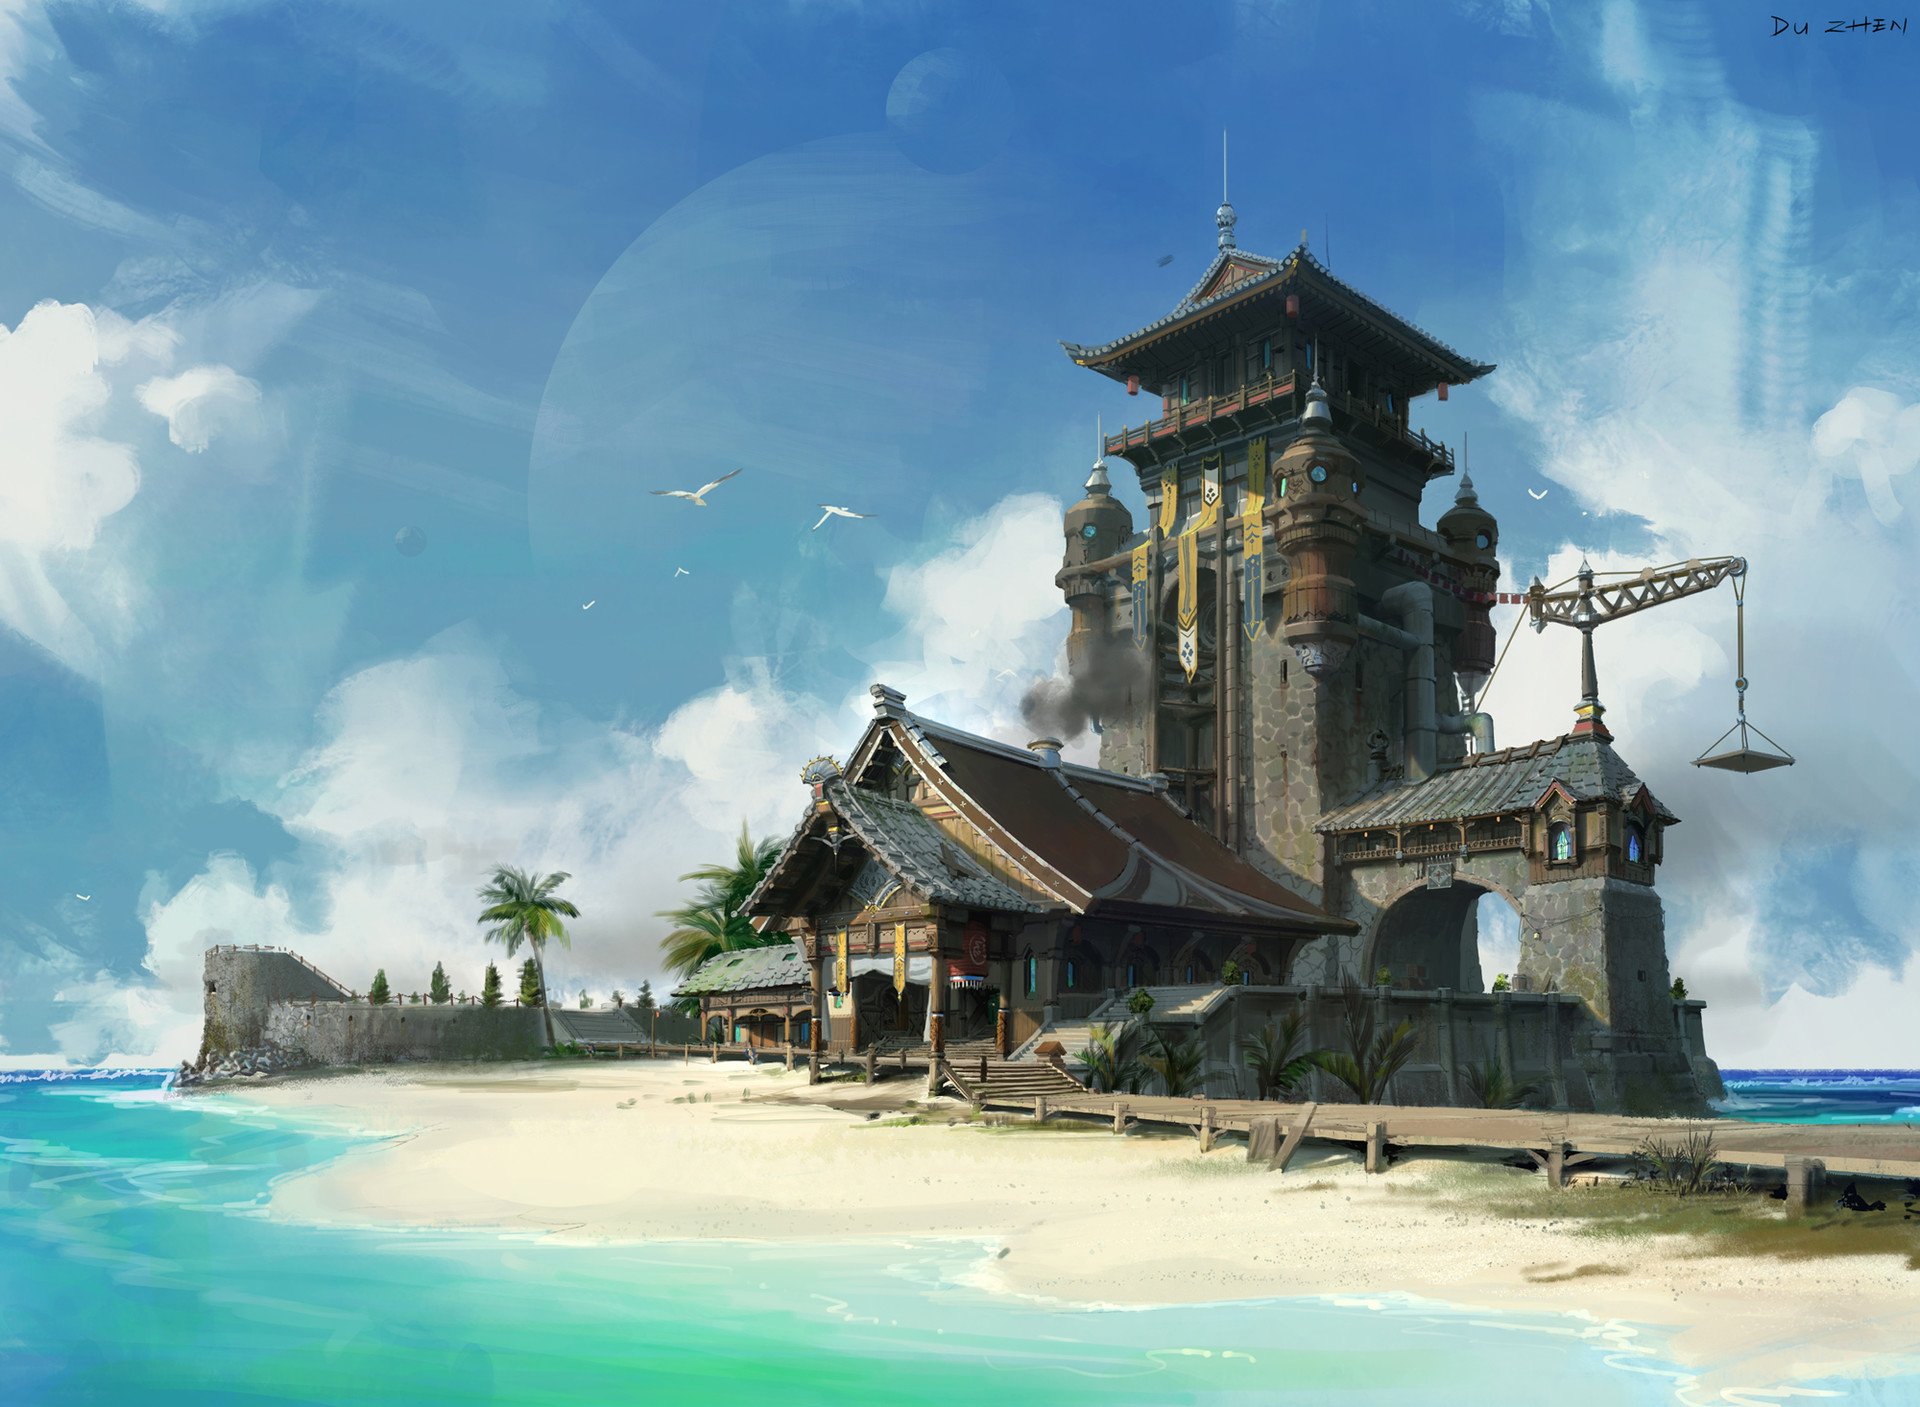 beach and chinese style architecturefenghuaart on deviantart